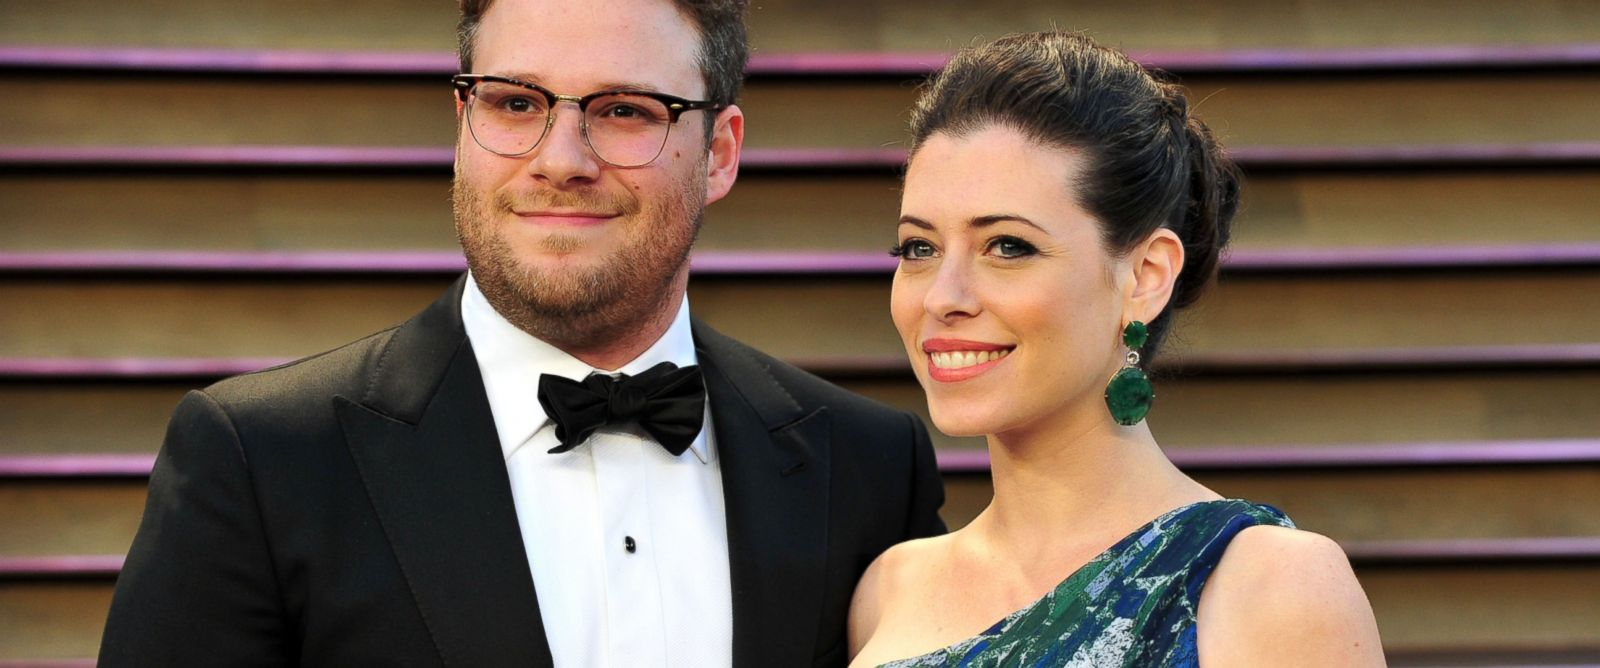 PHOTO: Seth Rogen and Lauren Miller attend the 2014 Vanity Fair Oscar Party, March 2, 2014, in West Hollywood, Calif.